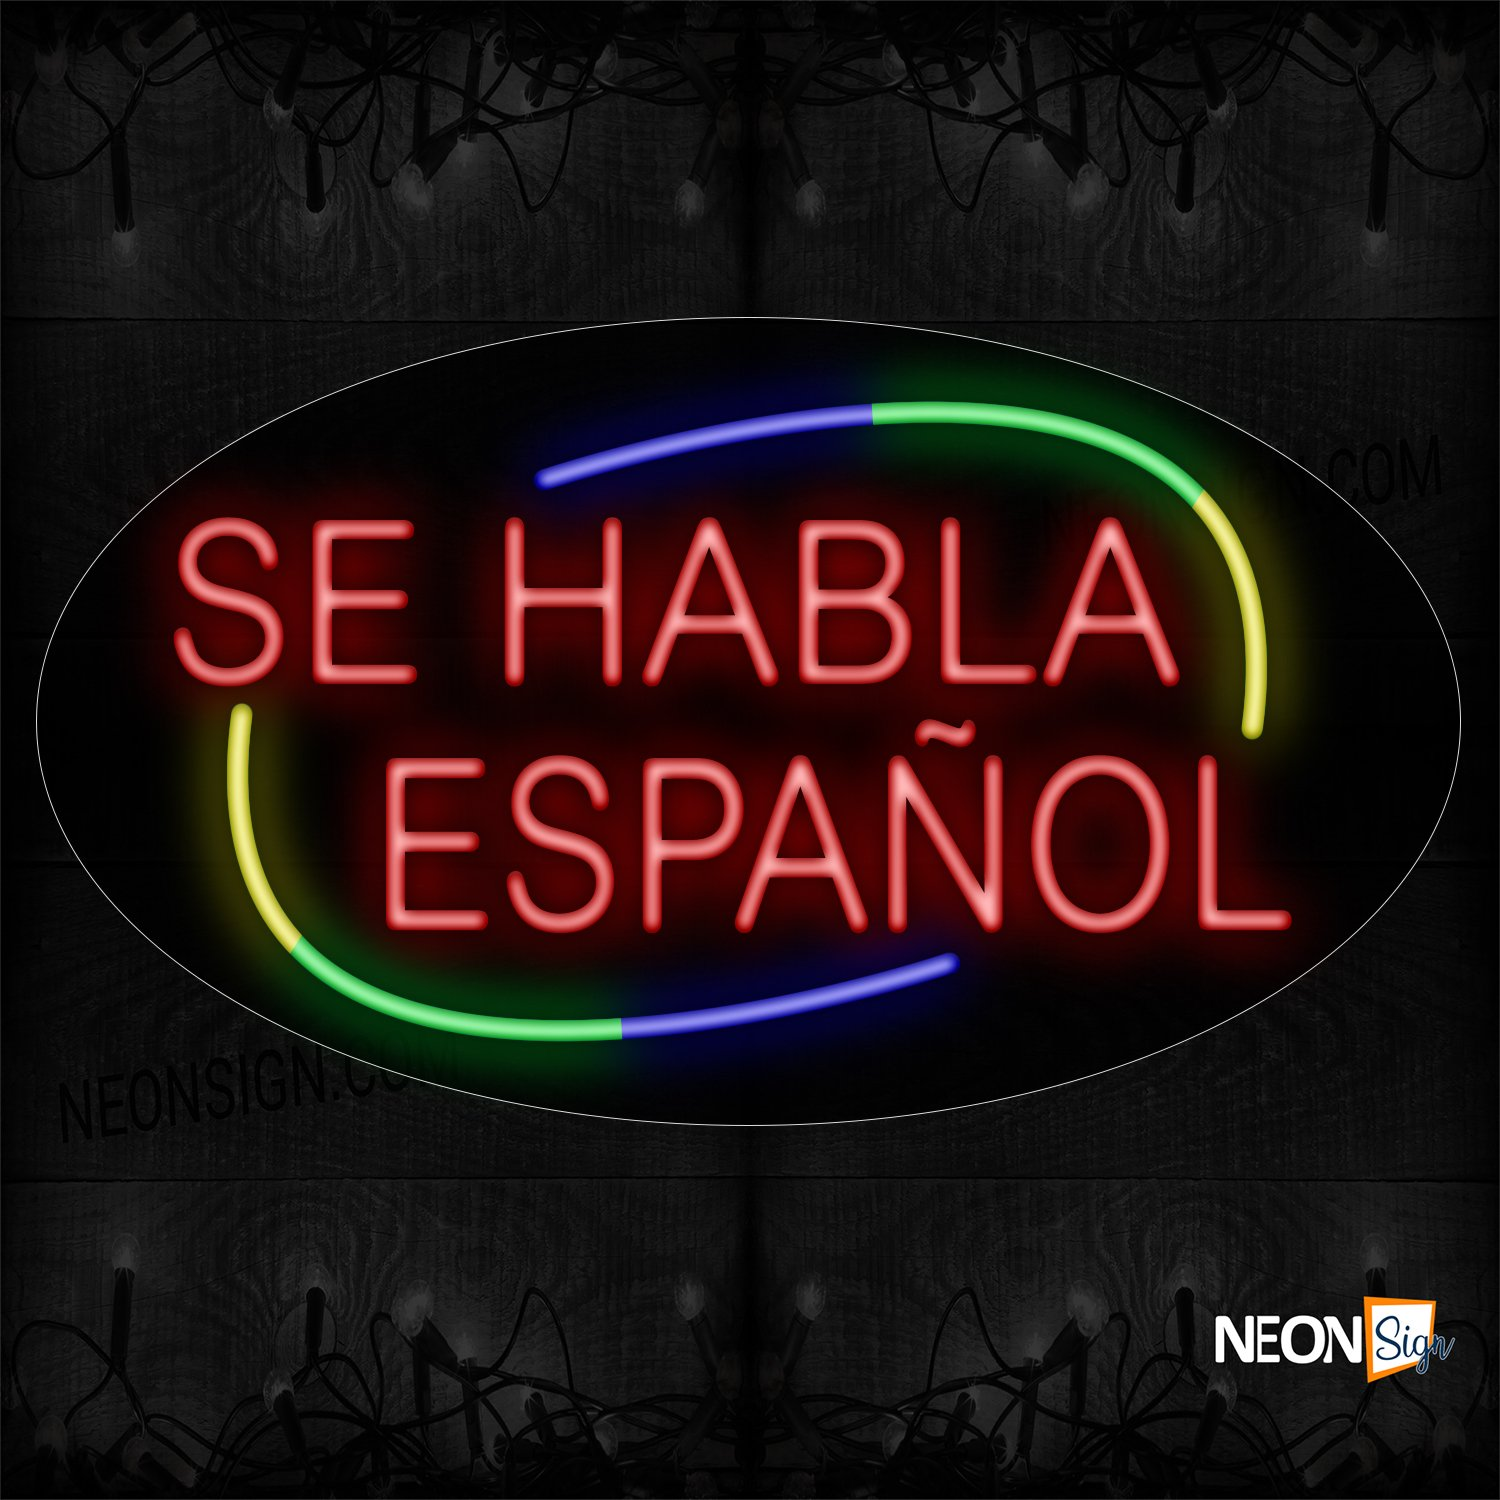 Image of Se Habla Espanol With Circle Border Neon Sign